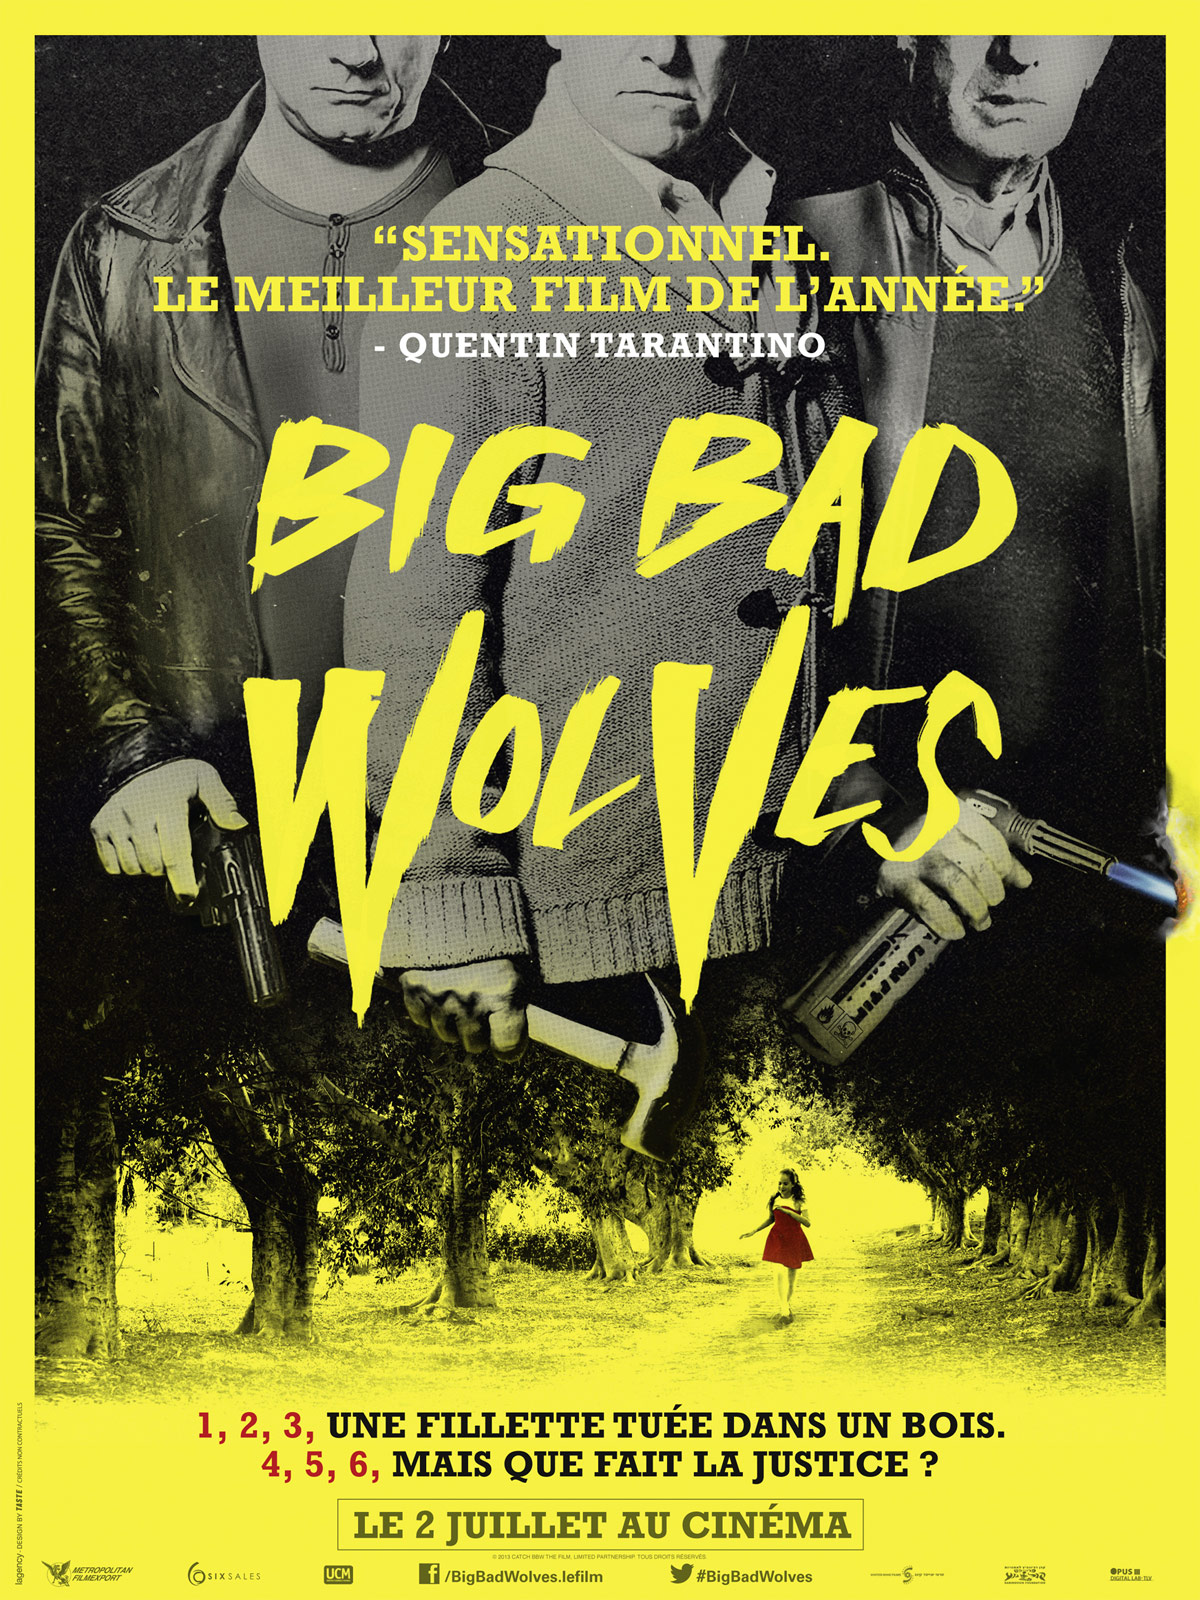 Big Bad Wolves Backgrounds, Compatible - PC, Mobile, Gadgets| 1200x1600 px